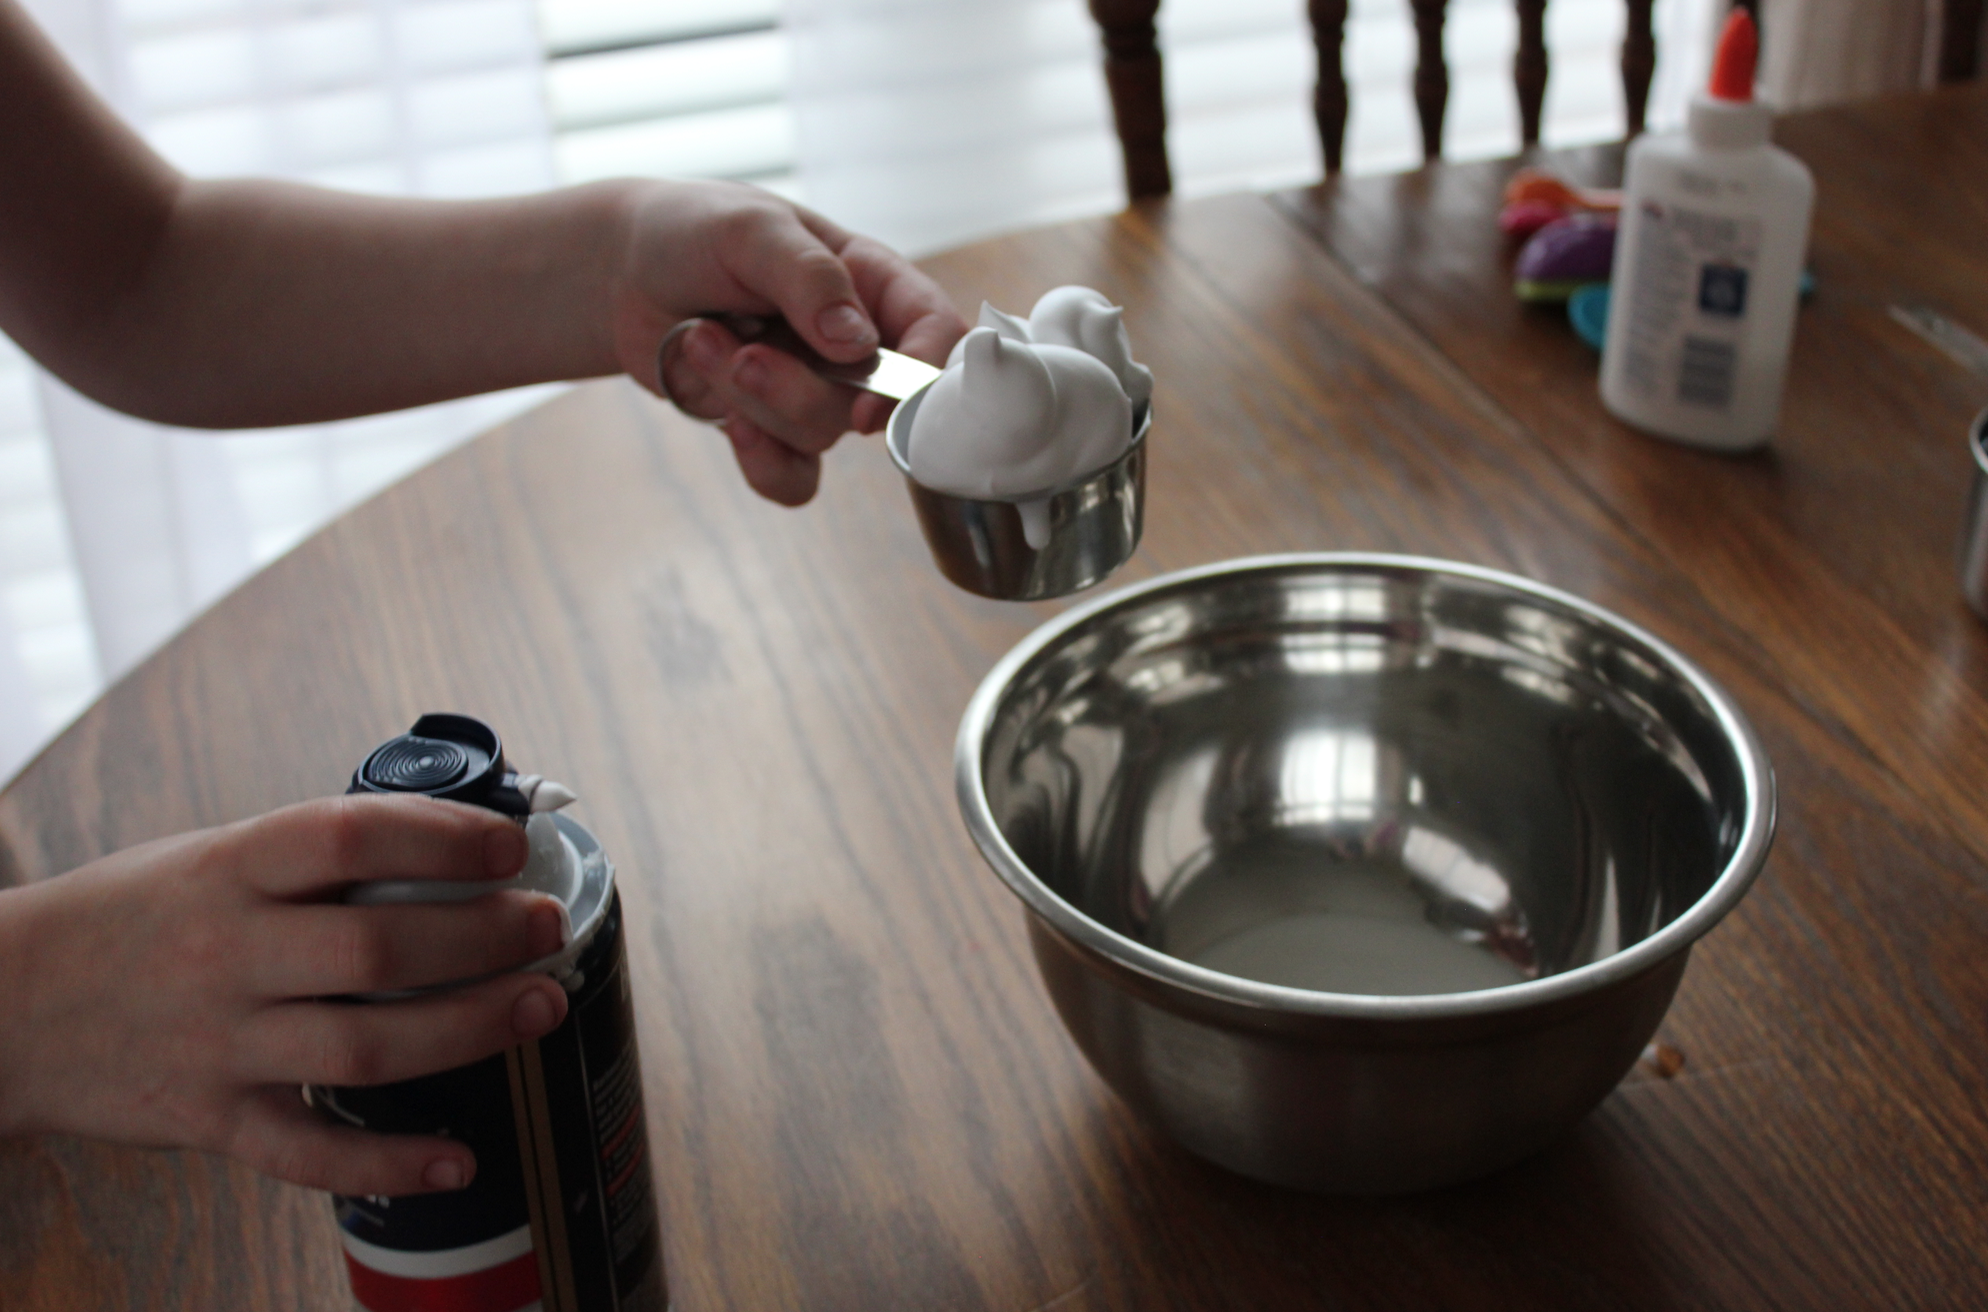 How to make homemade slime money saving mom now add one fourth a cup of glue shaving cream foaming hand soap and a few squirts of liquid hand soap to the bowl mix well ccuart Choice Image